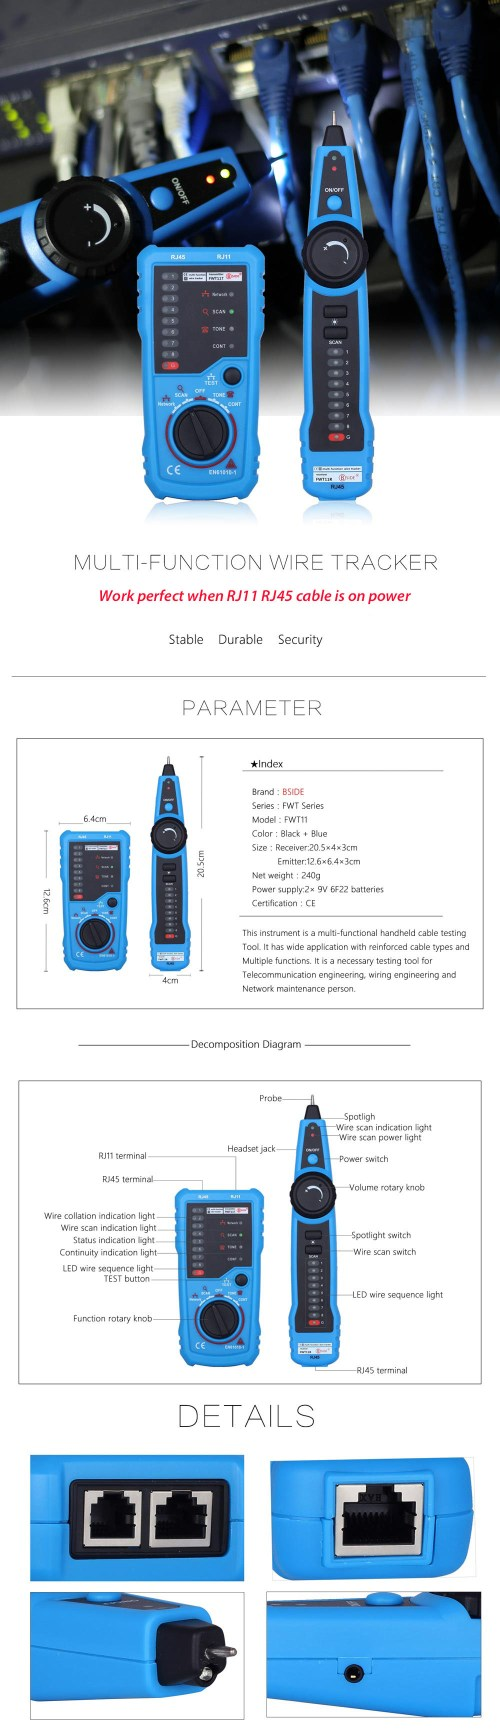 small resolution of bside fwt11 handheld rj45 rj11 network telephone cable tester wire line tracker blue and black